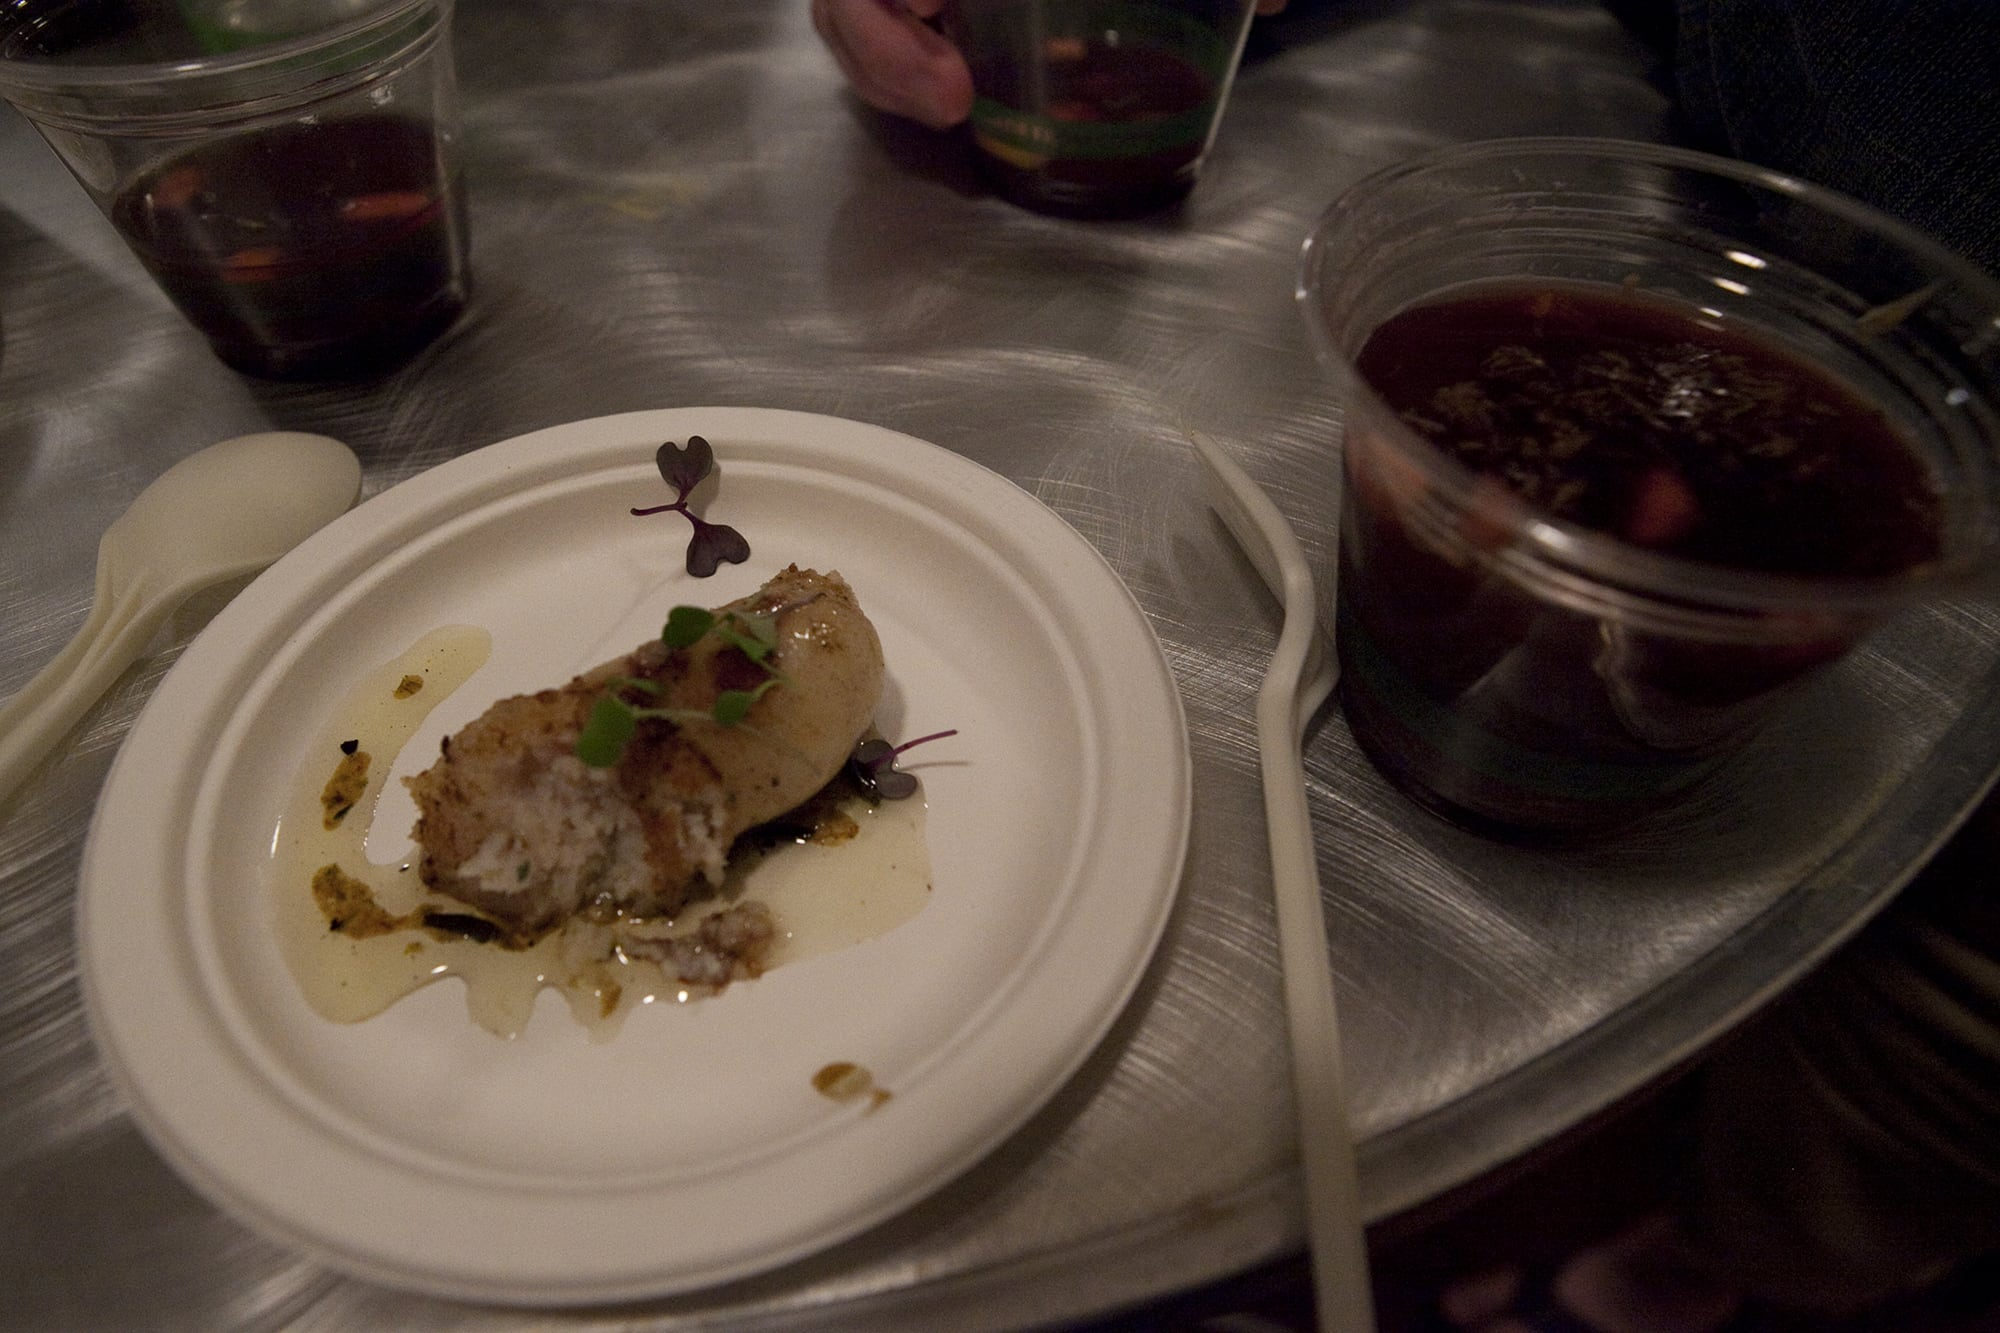 Bacon and cod sausage from Eve Restaurant at Baconfest Chicago - a bacon festival